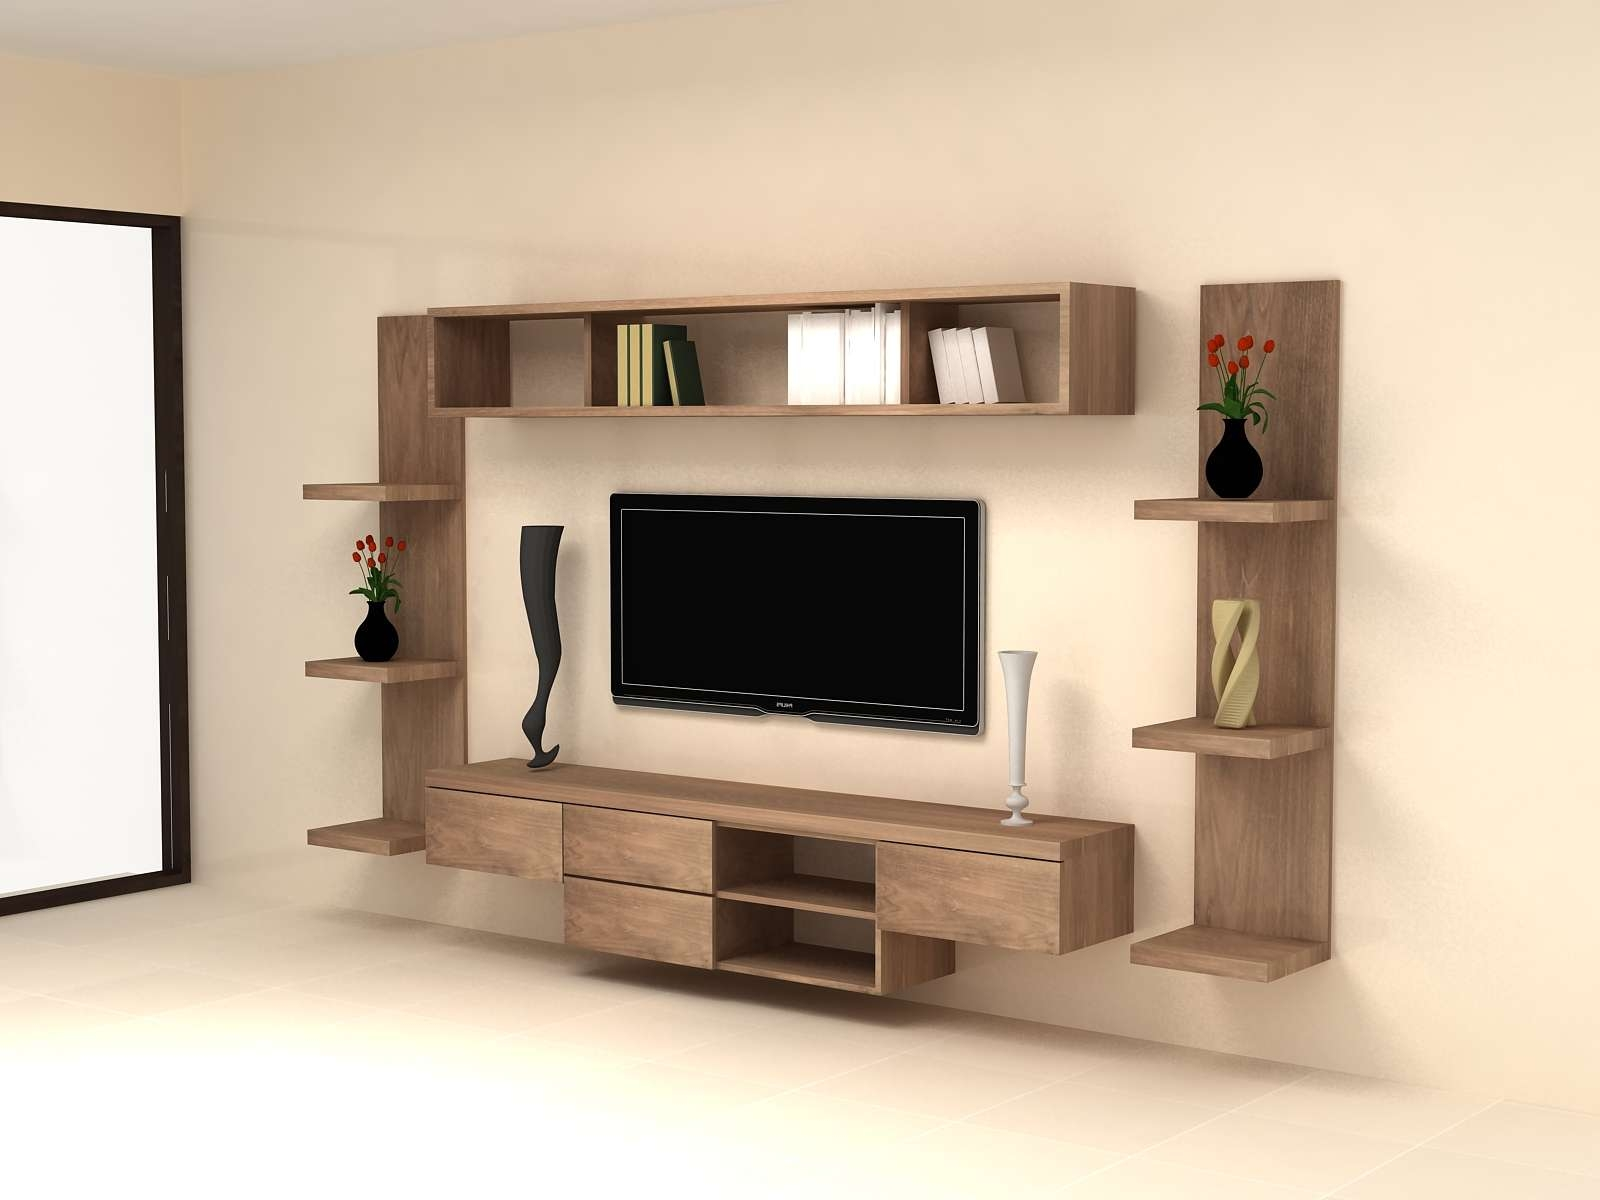 interior design tv cabinet photos. Black Bedroom Furniture Sets. Home Design Ideas